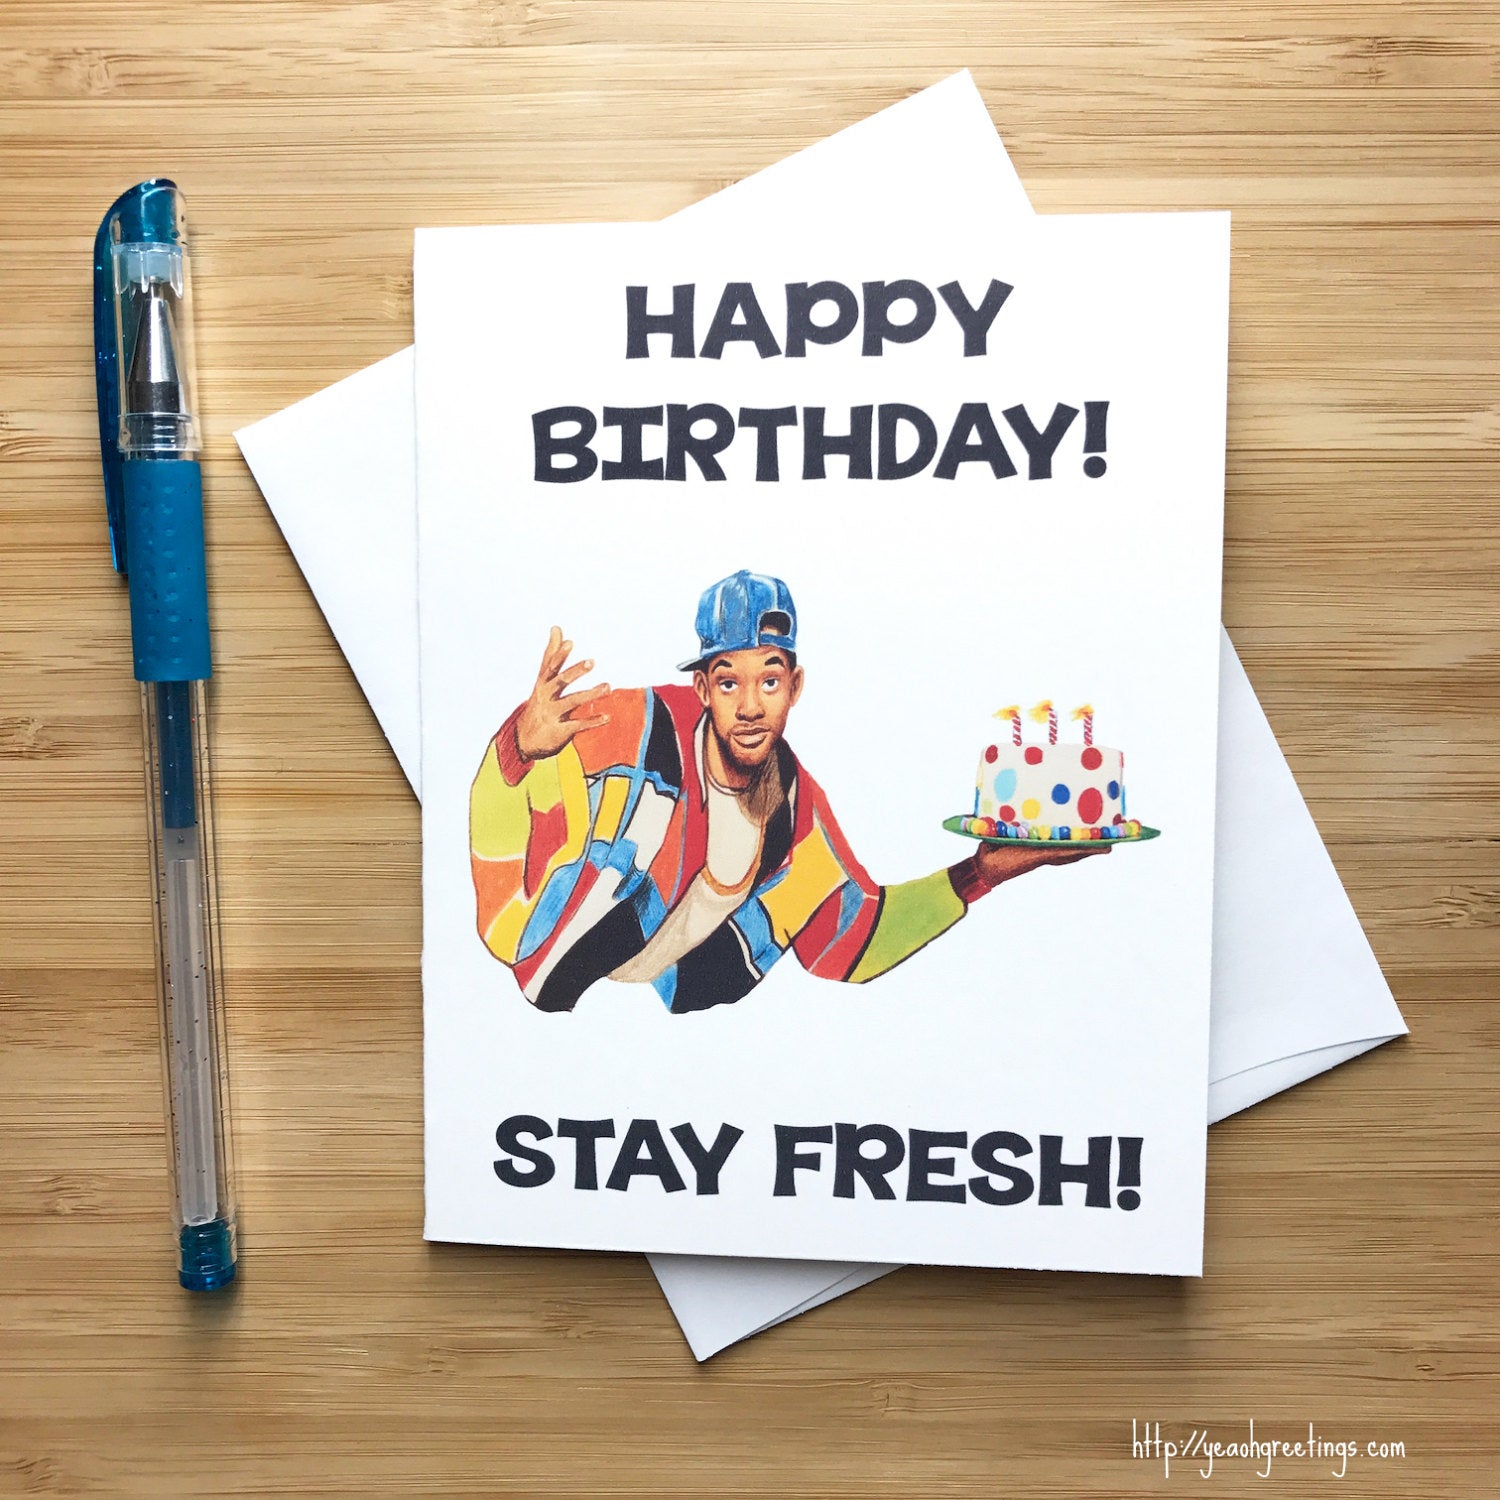 to my prince happy birthday Card Funny  5x7 inches greeting